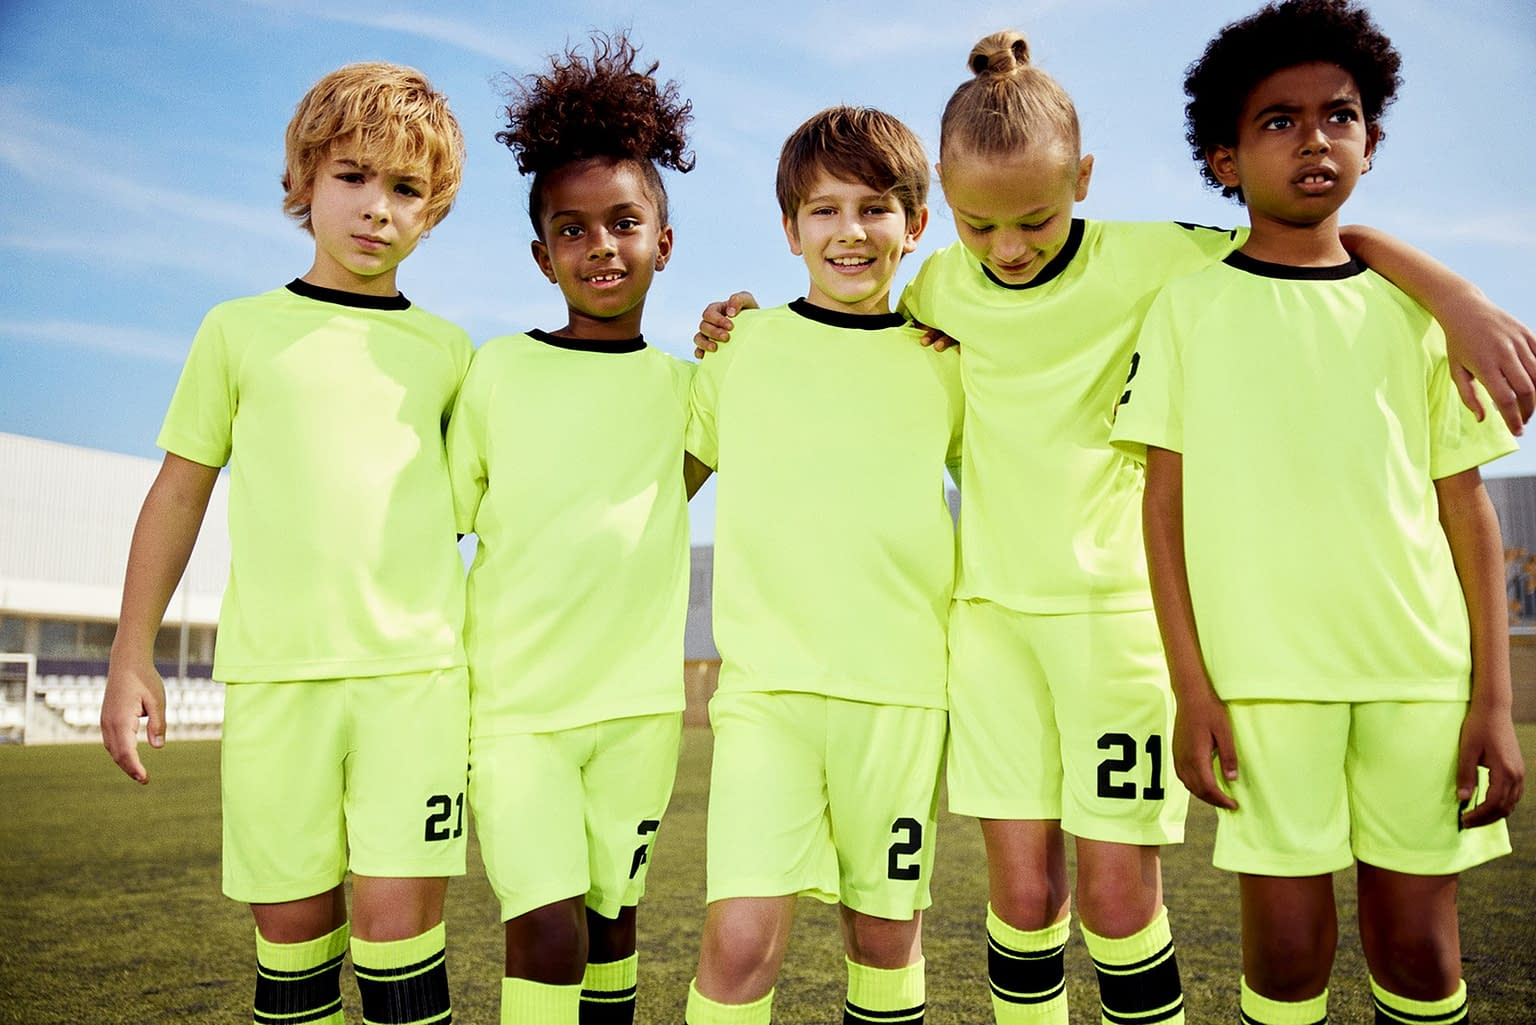 FOOTBALL-KIDS-COLLECTION-PHOTO-10-BY-ENRIC-GALCERAN